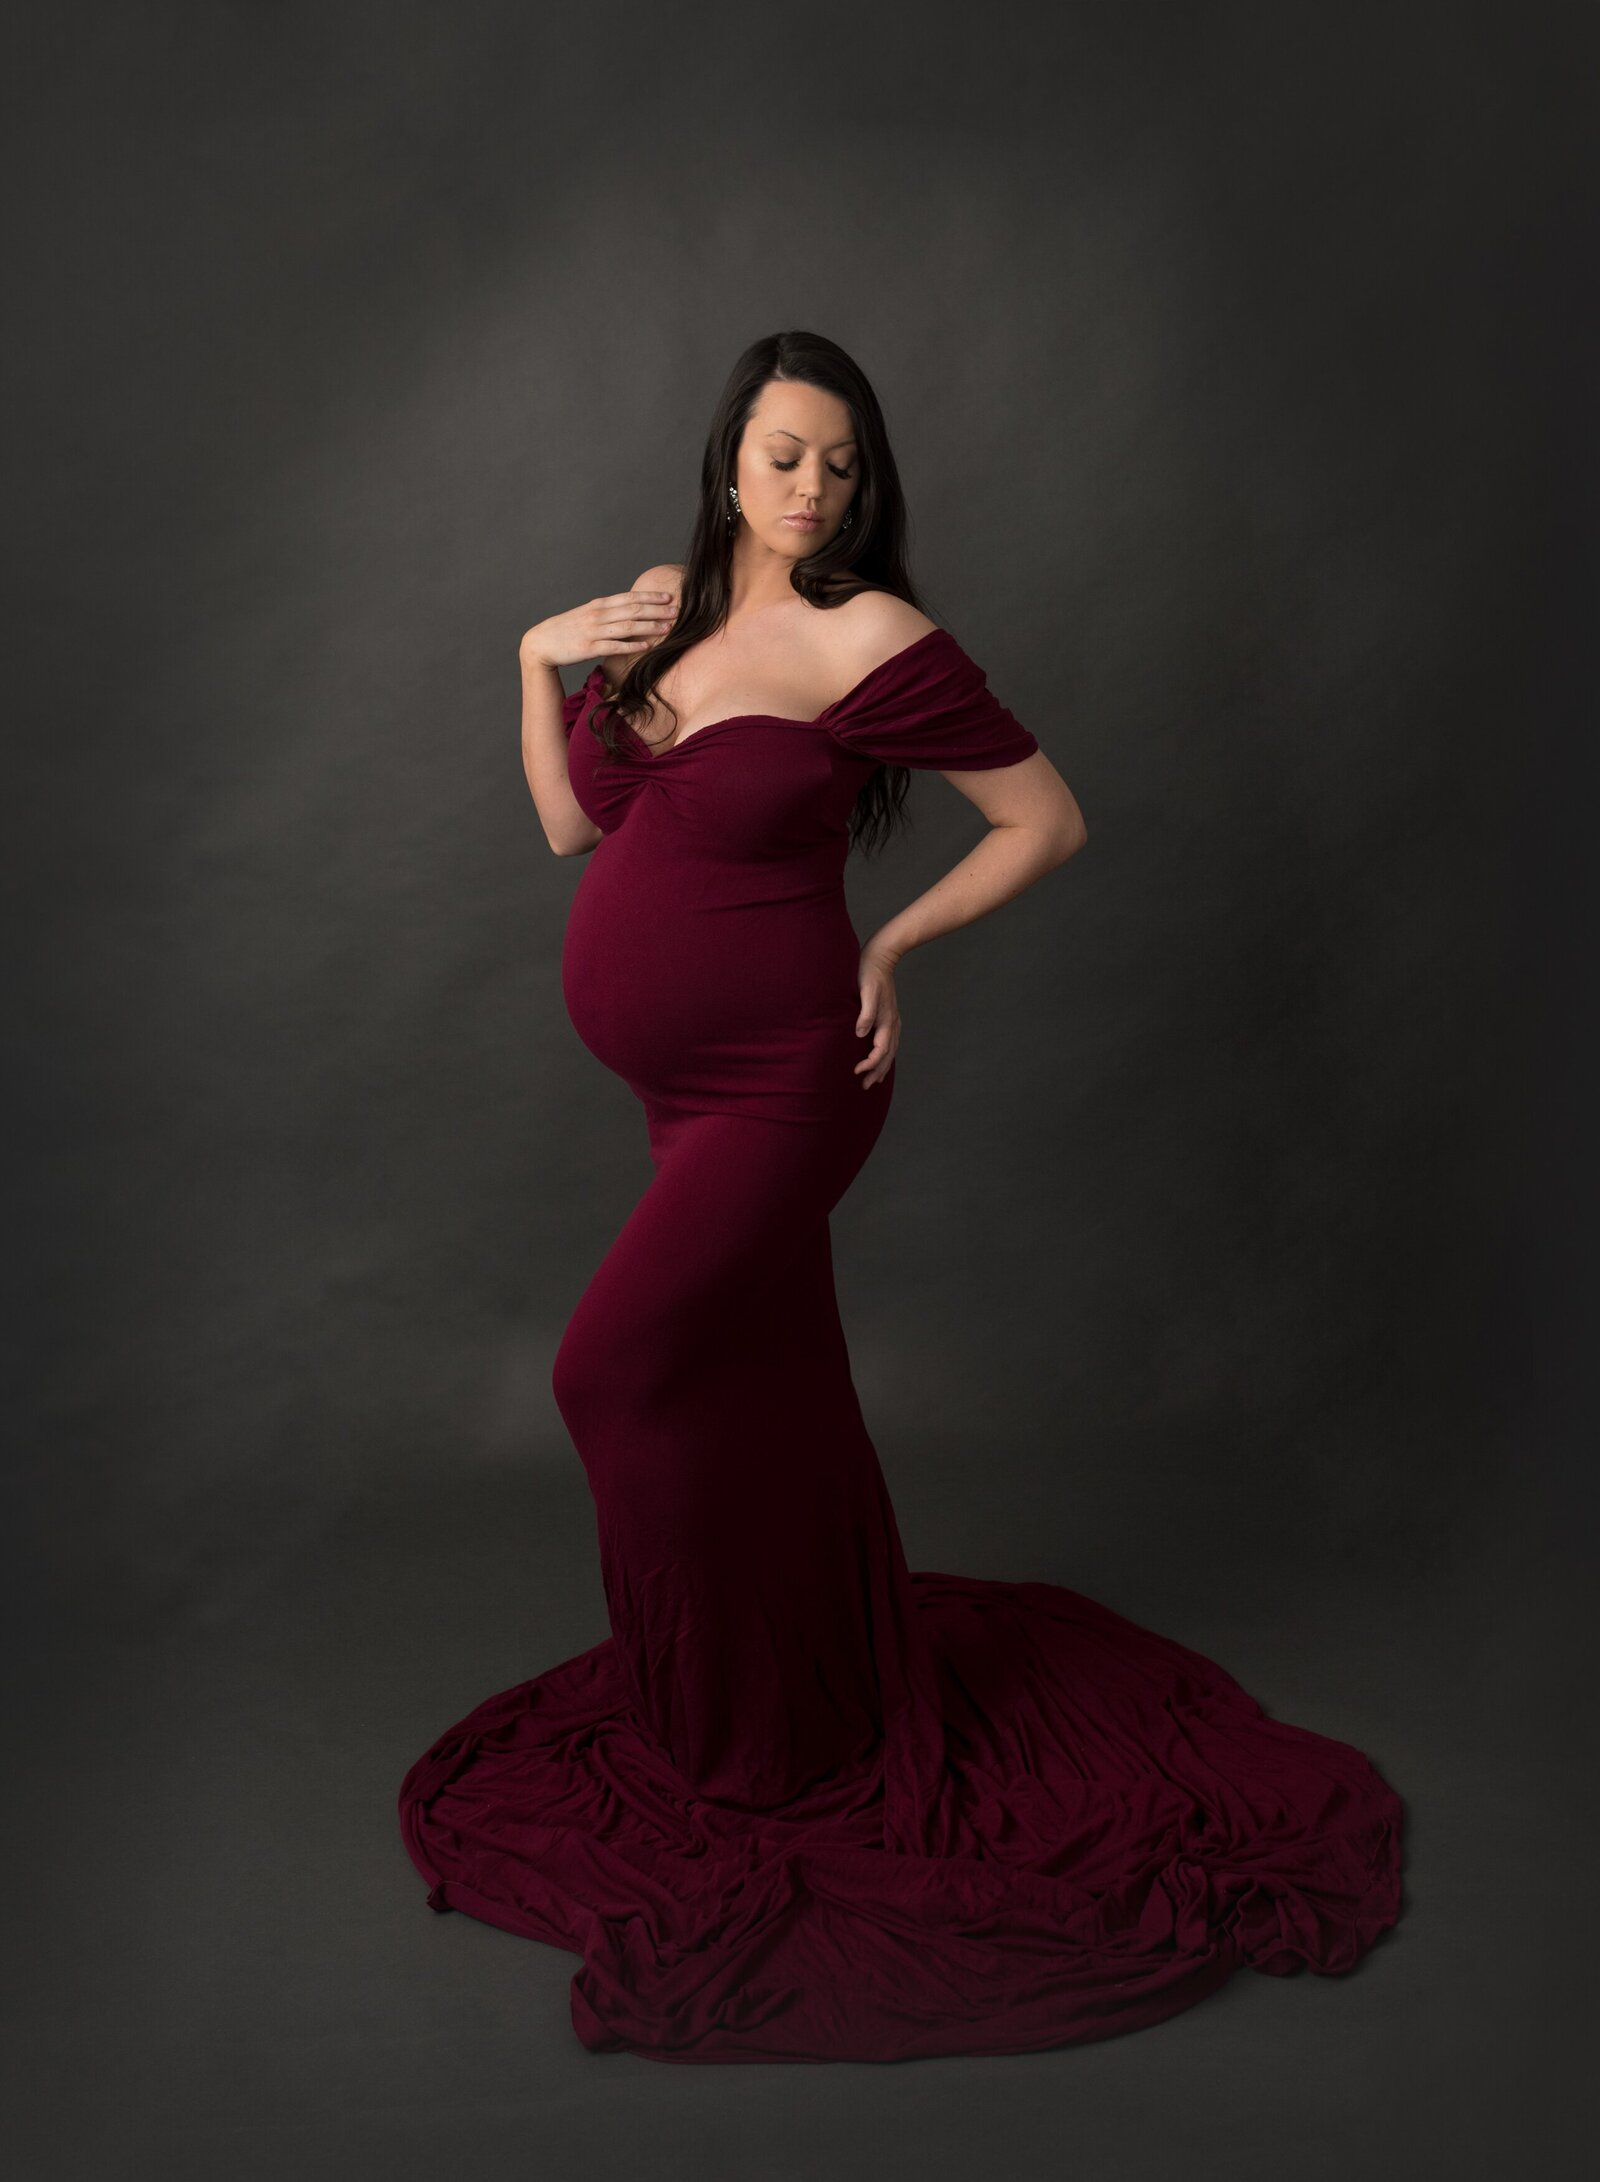 maternty photograph of a woman  wearing a wine coloured dress in a photography studio